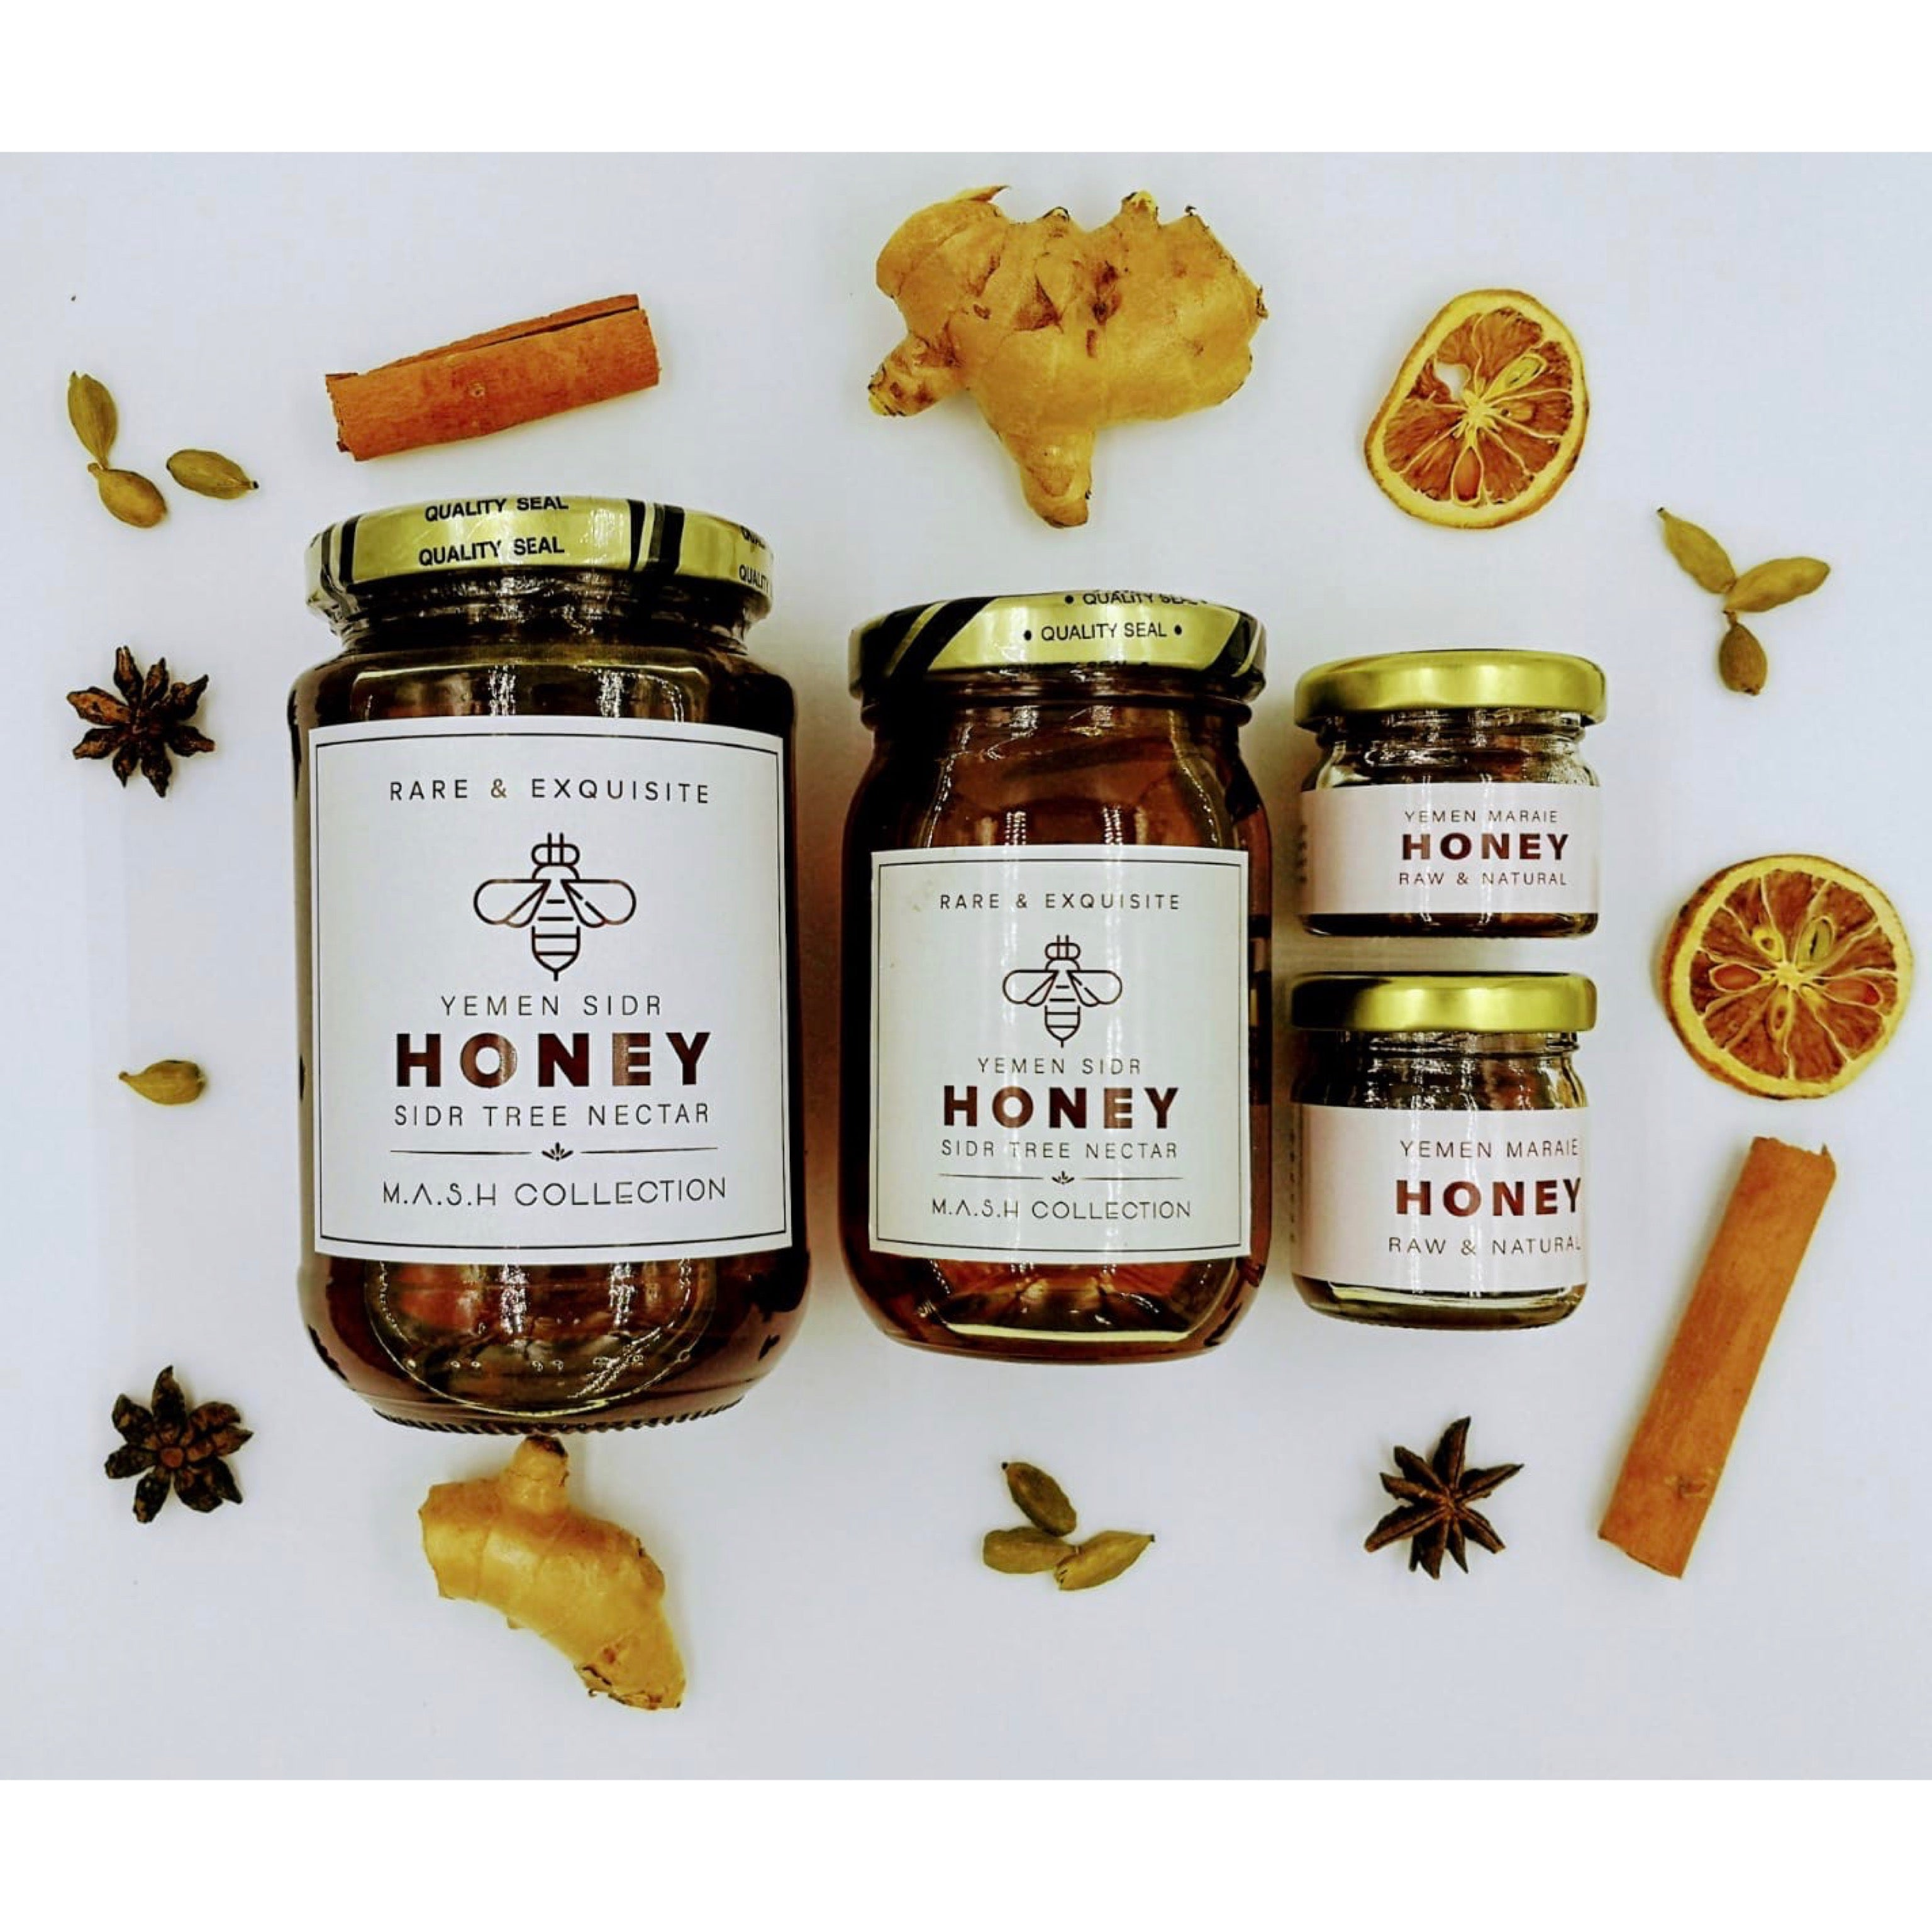 HONEY by M.A.S.H COLLECTION